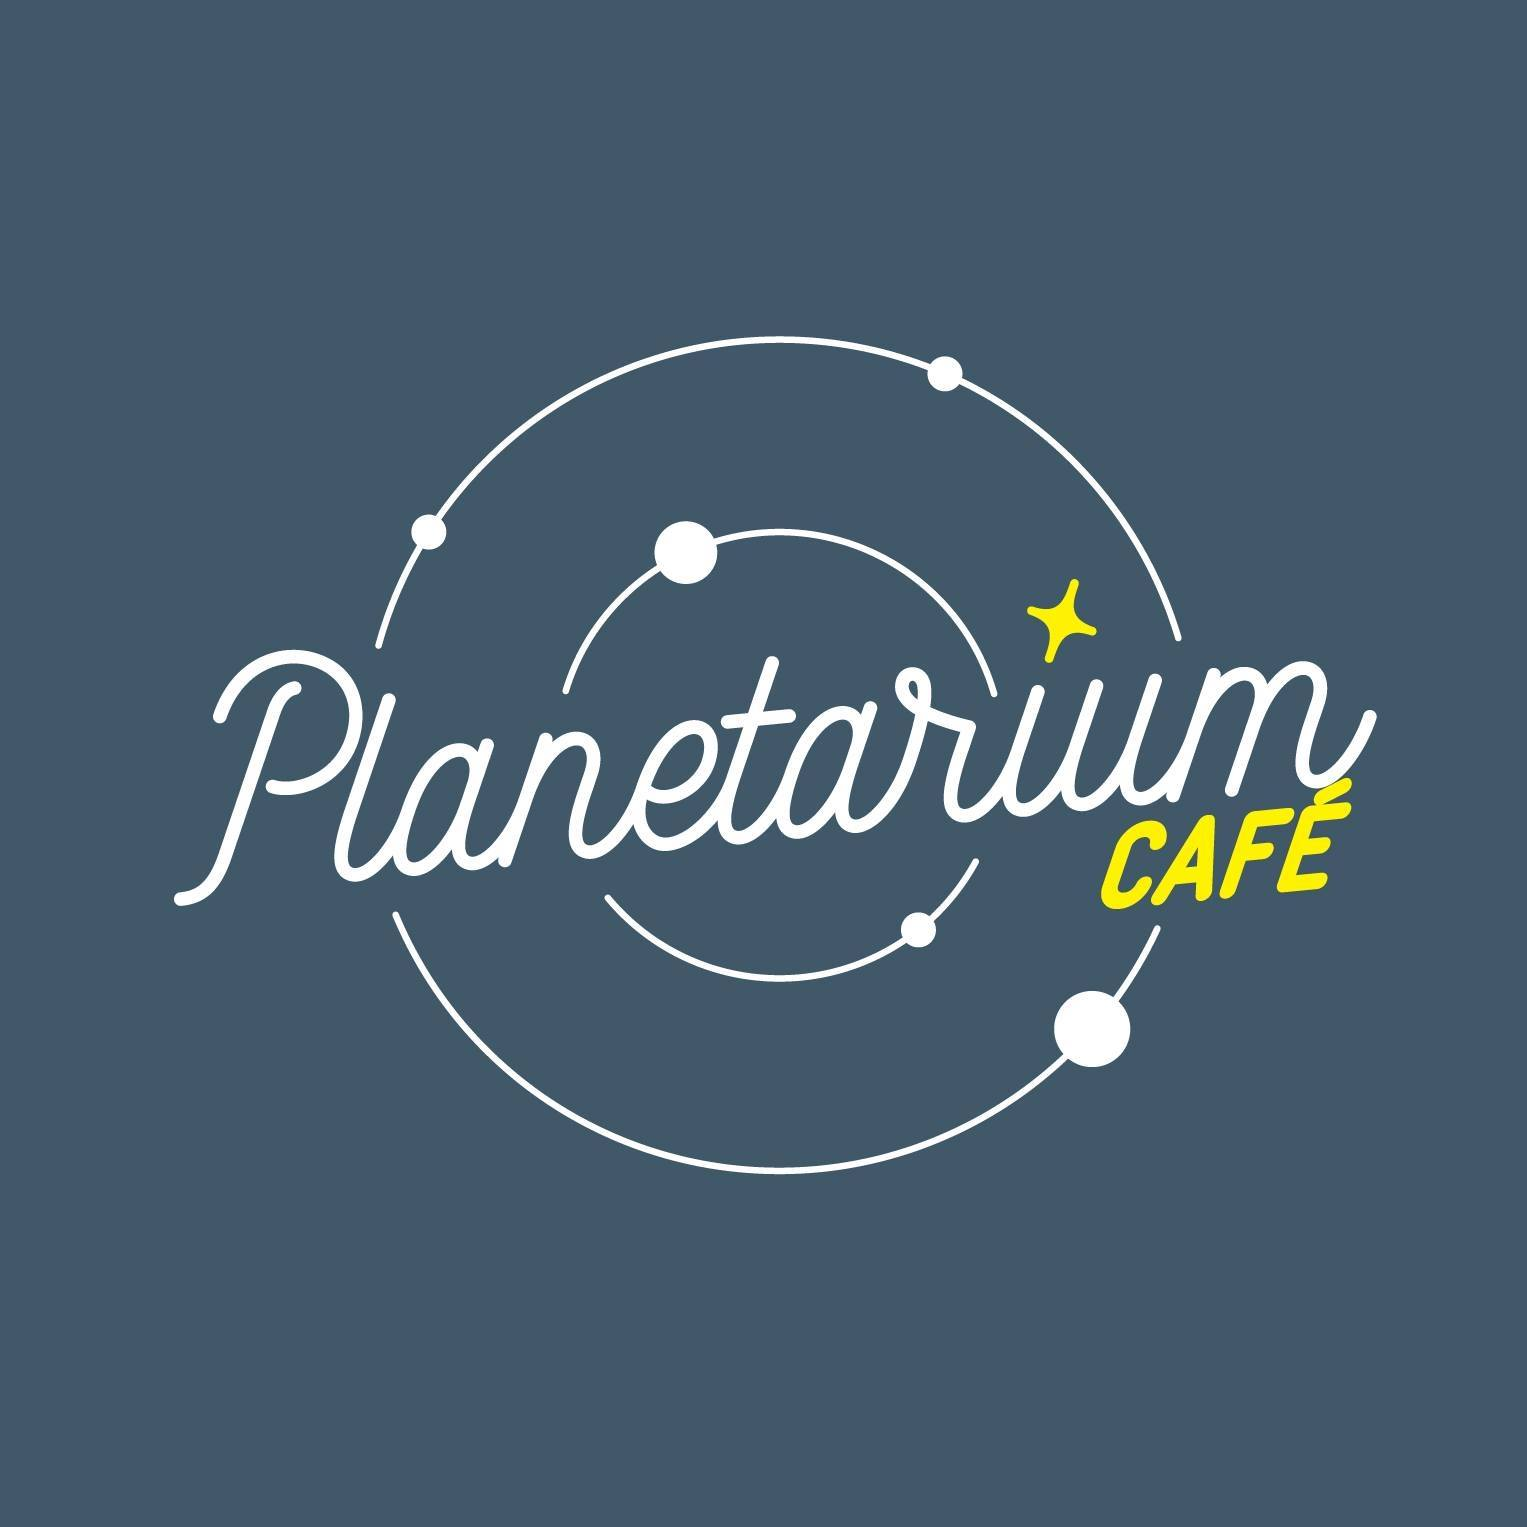 blue solar system logo with text planetarium cafe